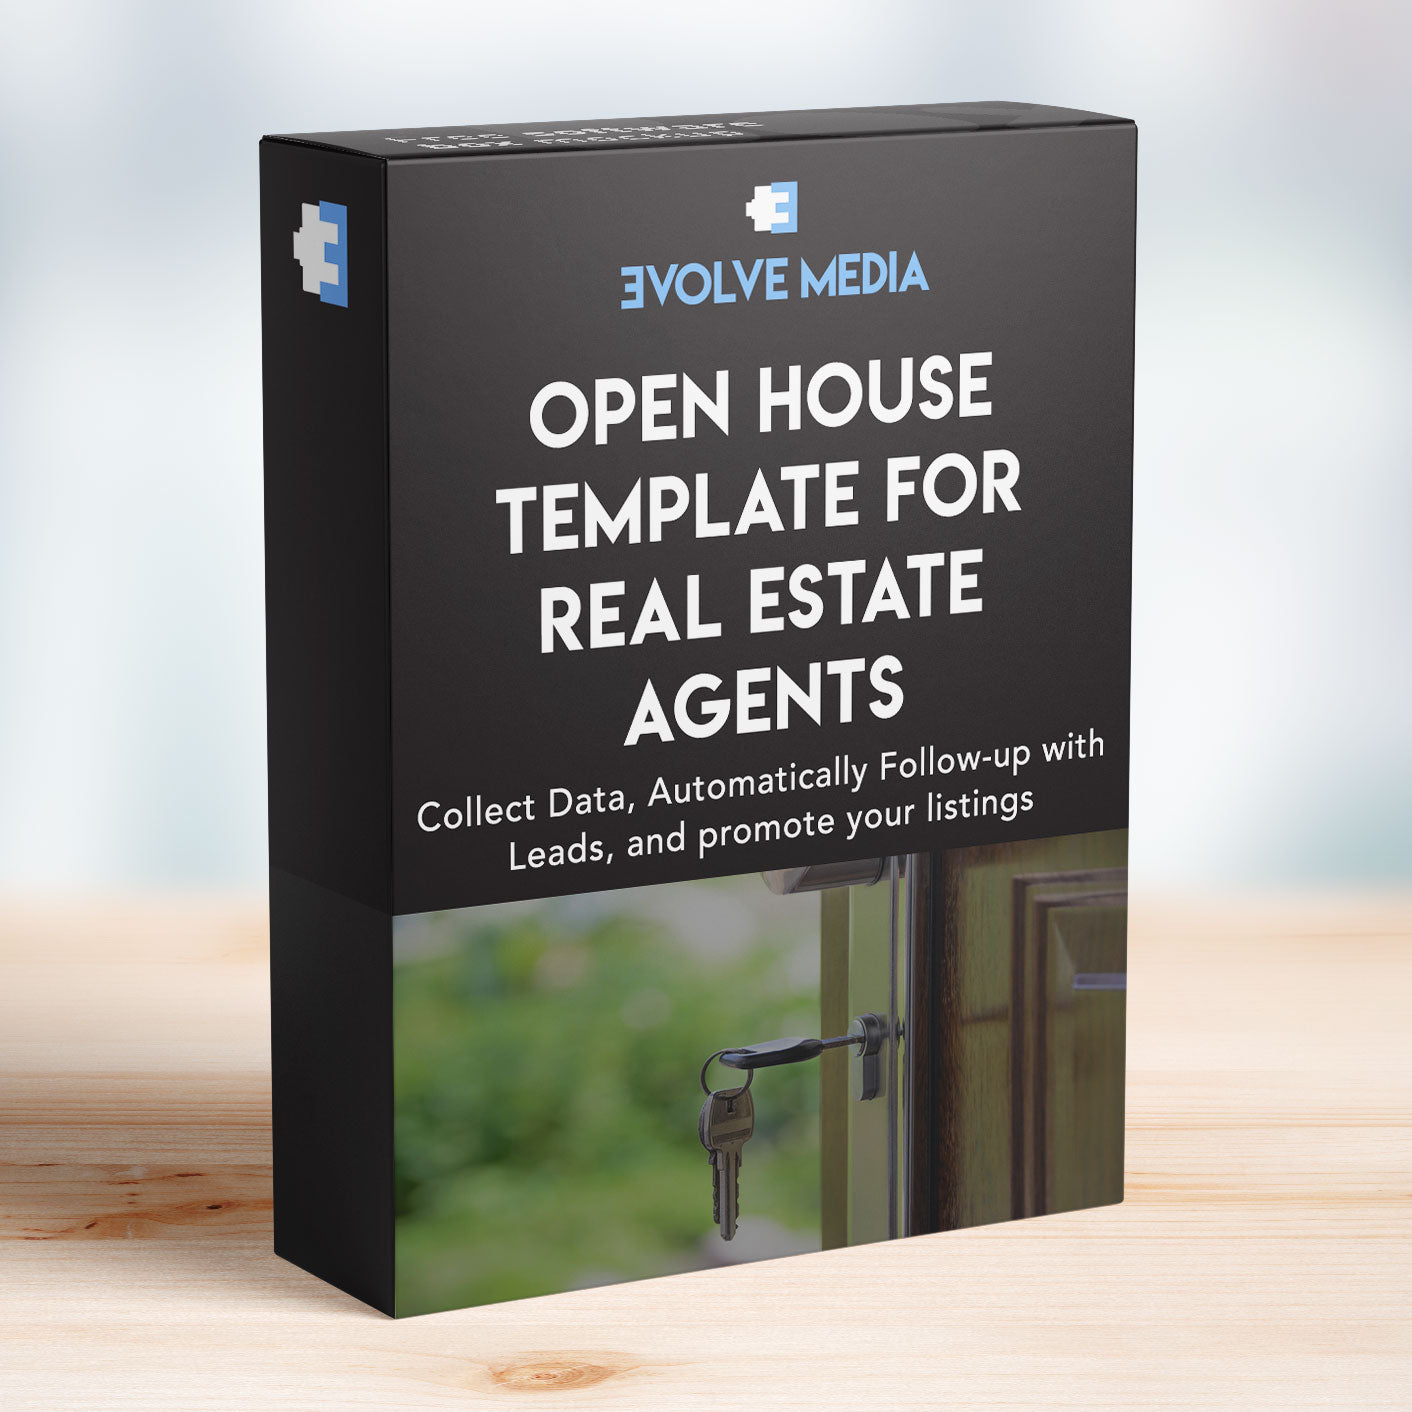 The Ultimate Open House Template for Real Estate Agents